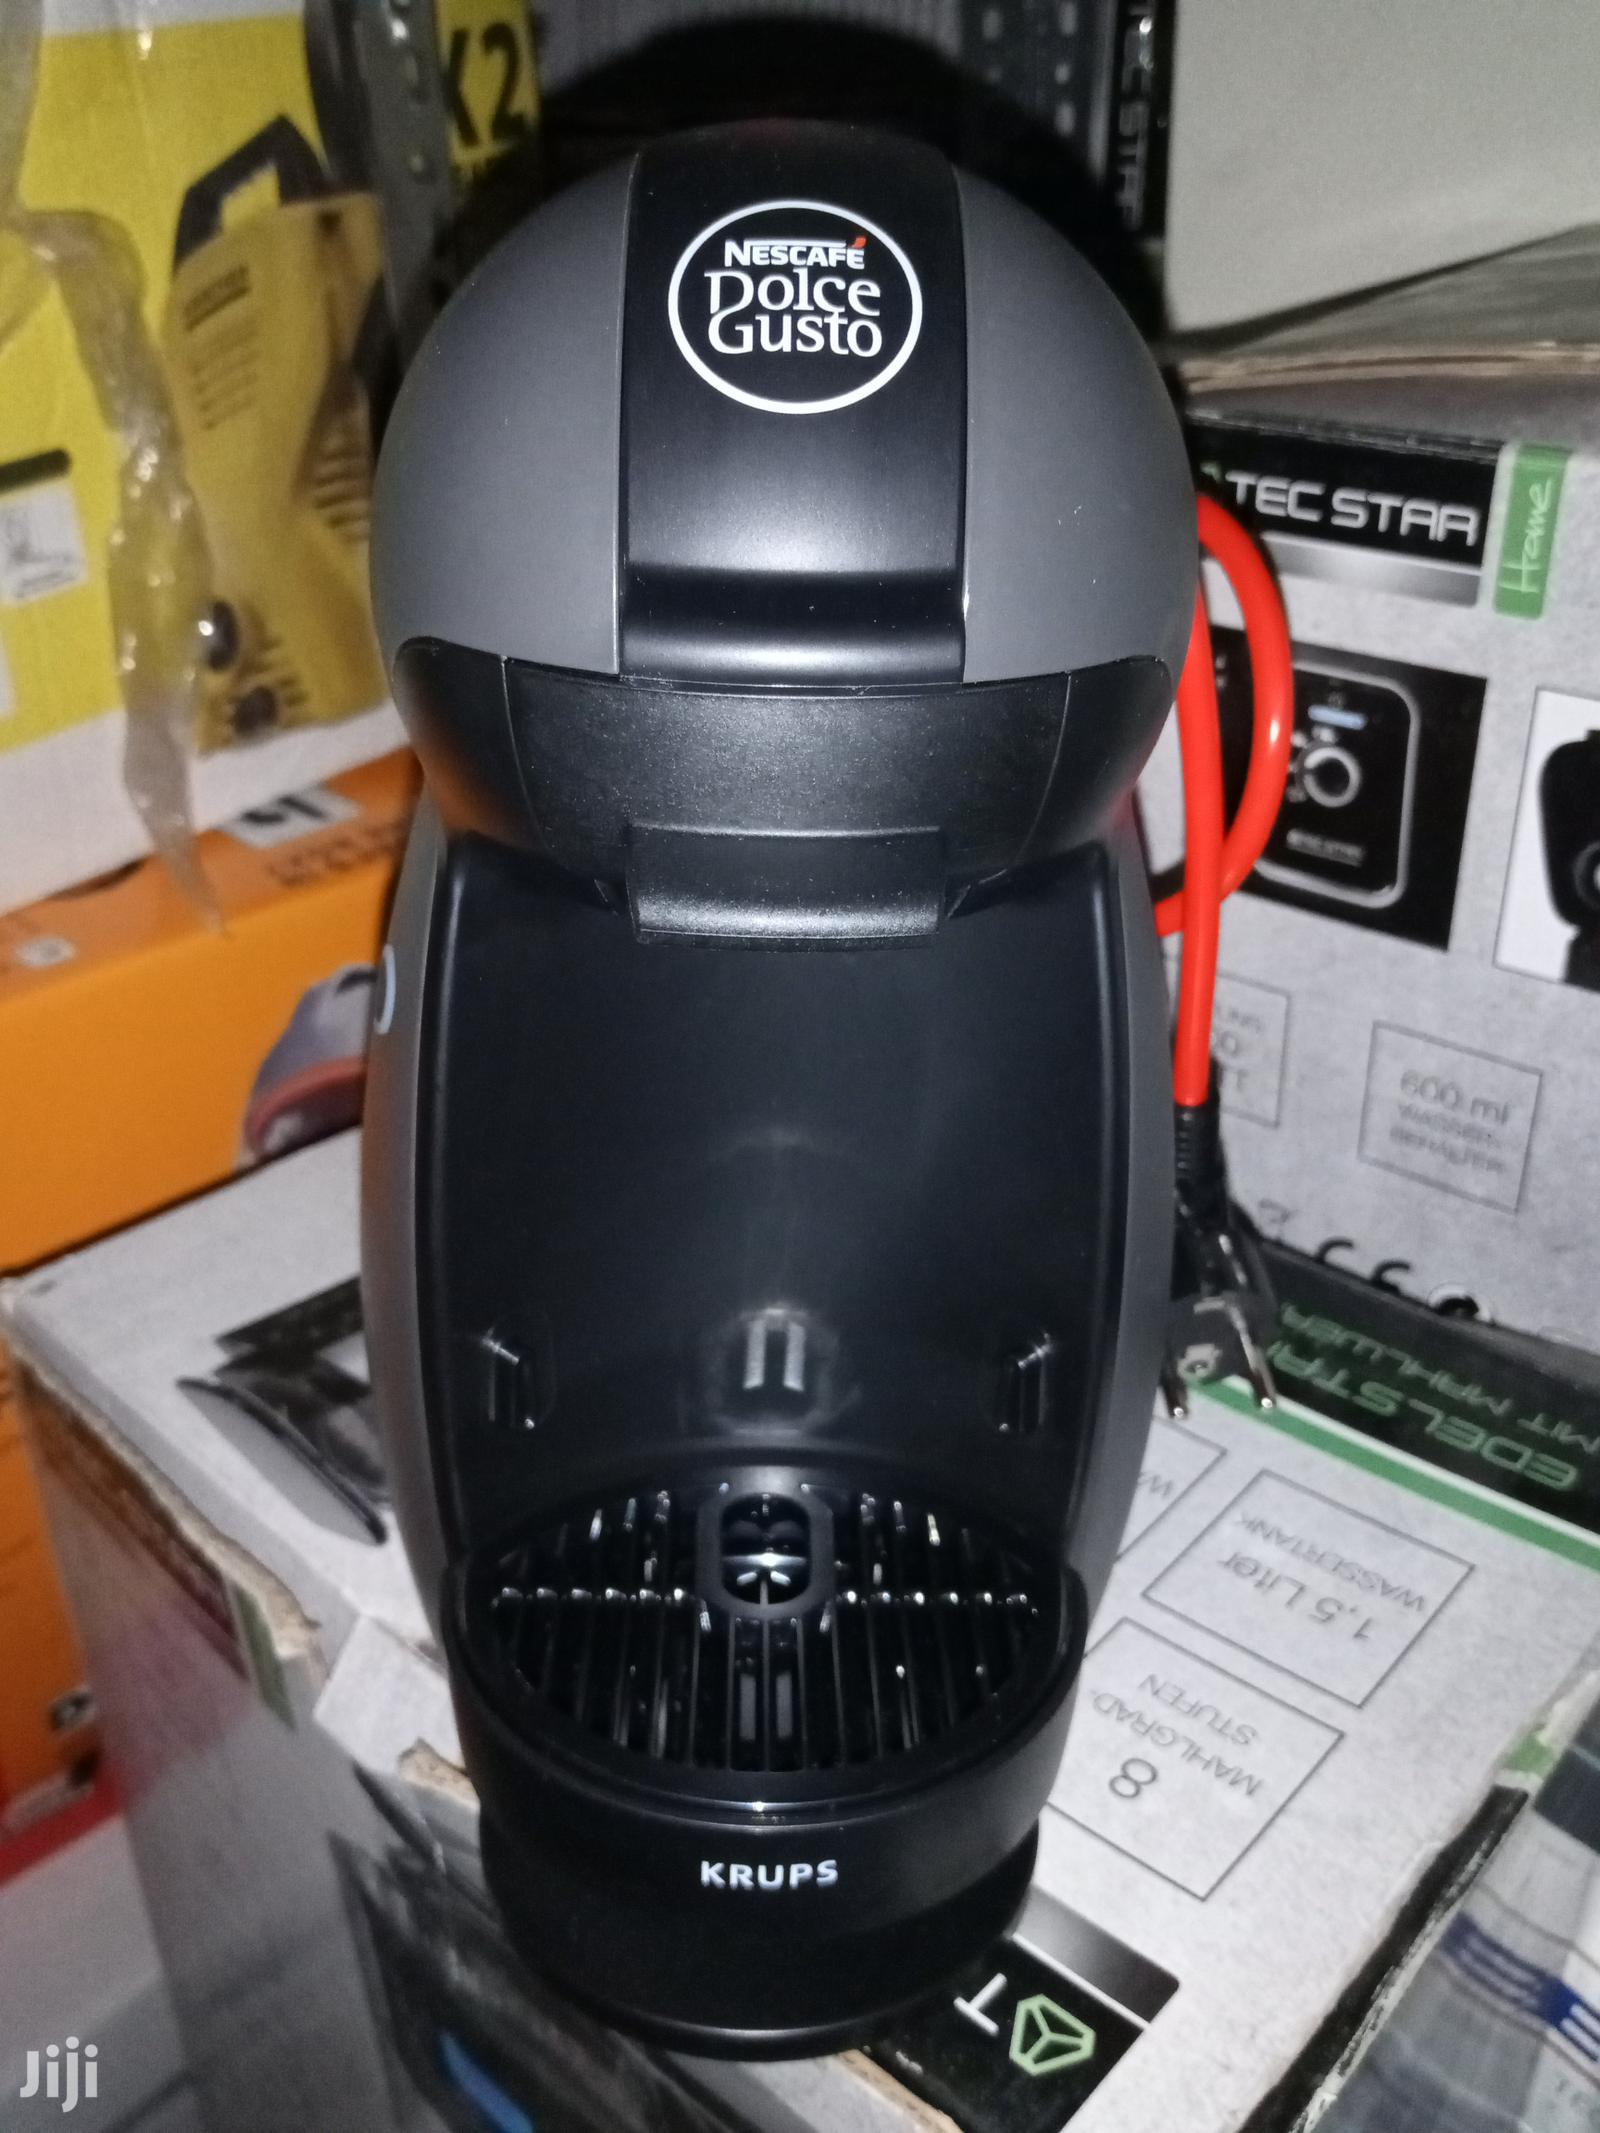 Archive: Coffee Maker Krups Nescafe Dolce Gusto